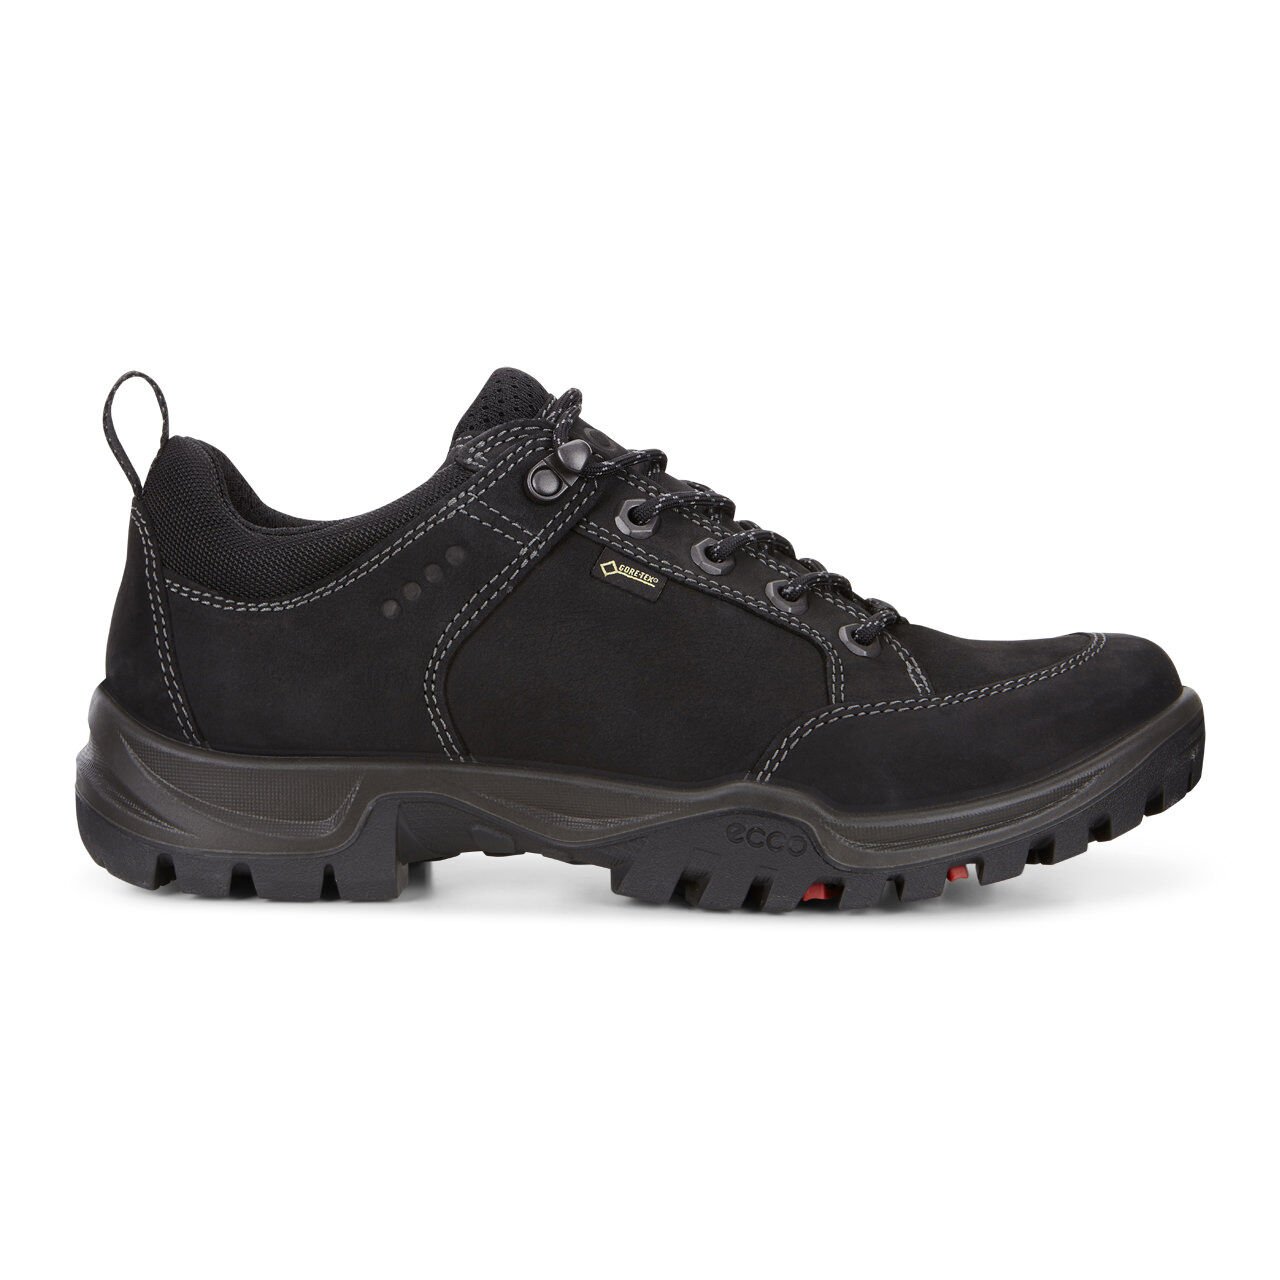 SaleEcco® SaleMen's Active Lifestyle SaleMen's Shoes Active nX80POwk